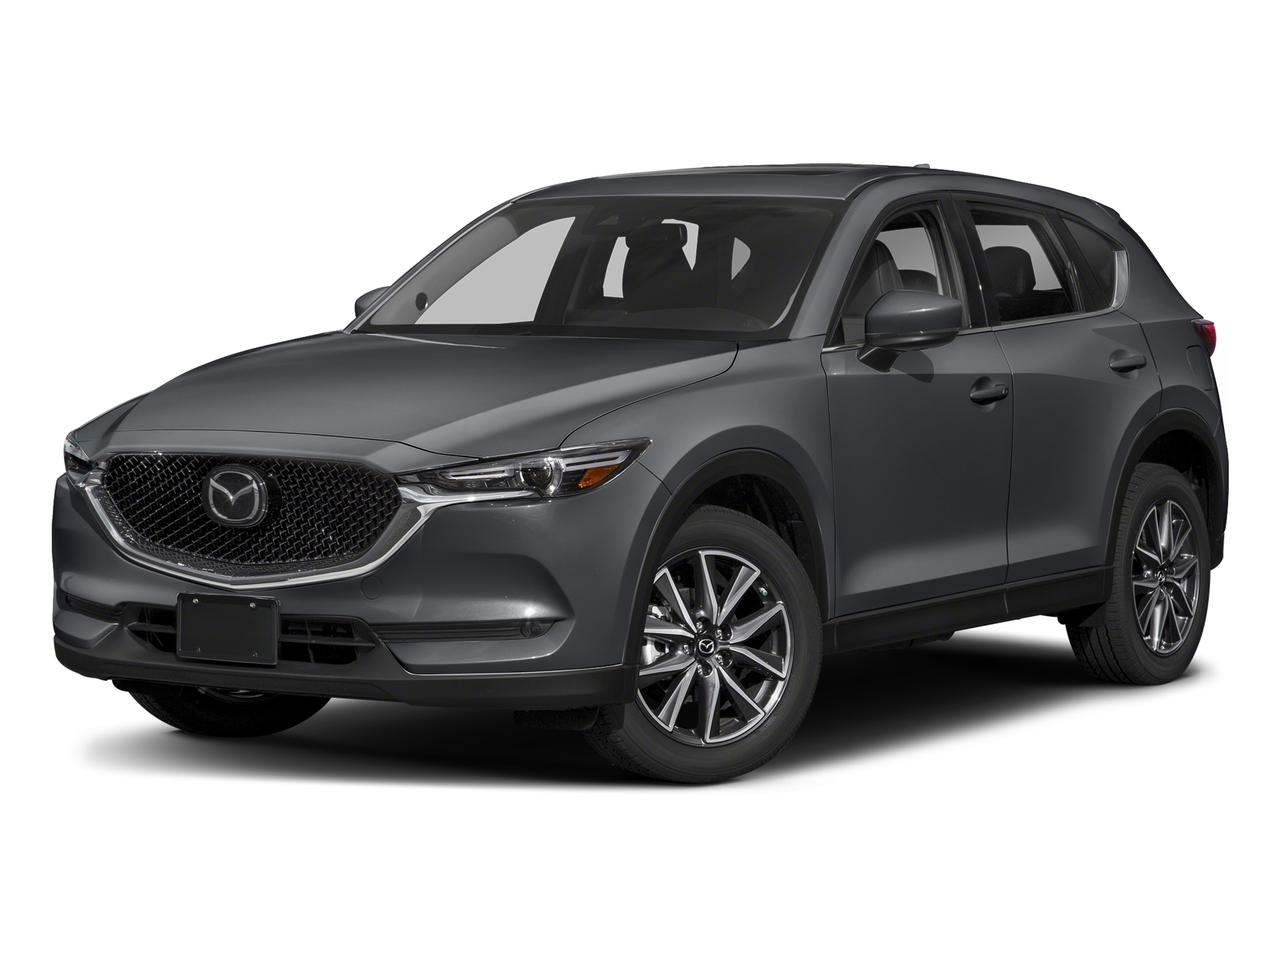 2018 Mazda CX-5 Vehicle Photo in Mission, TX 78572